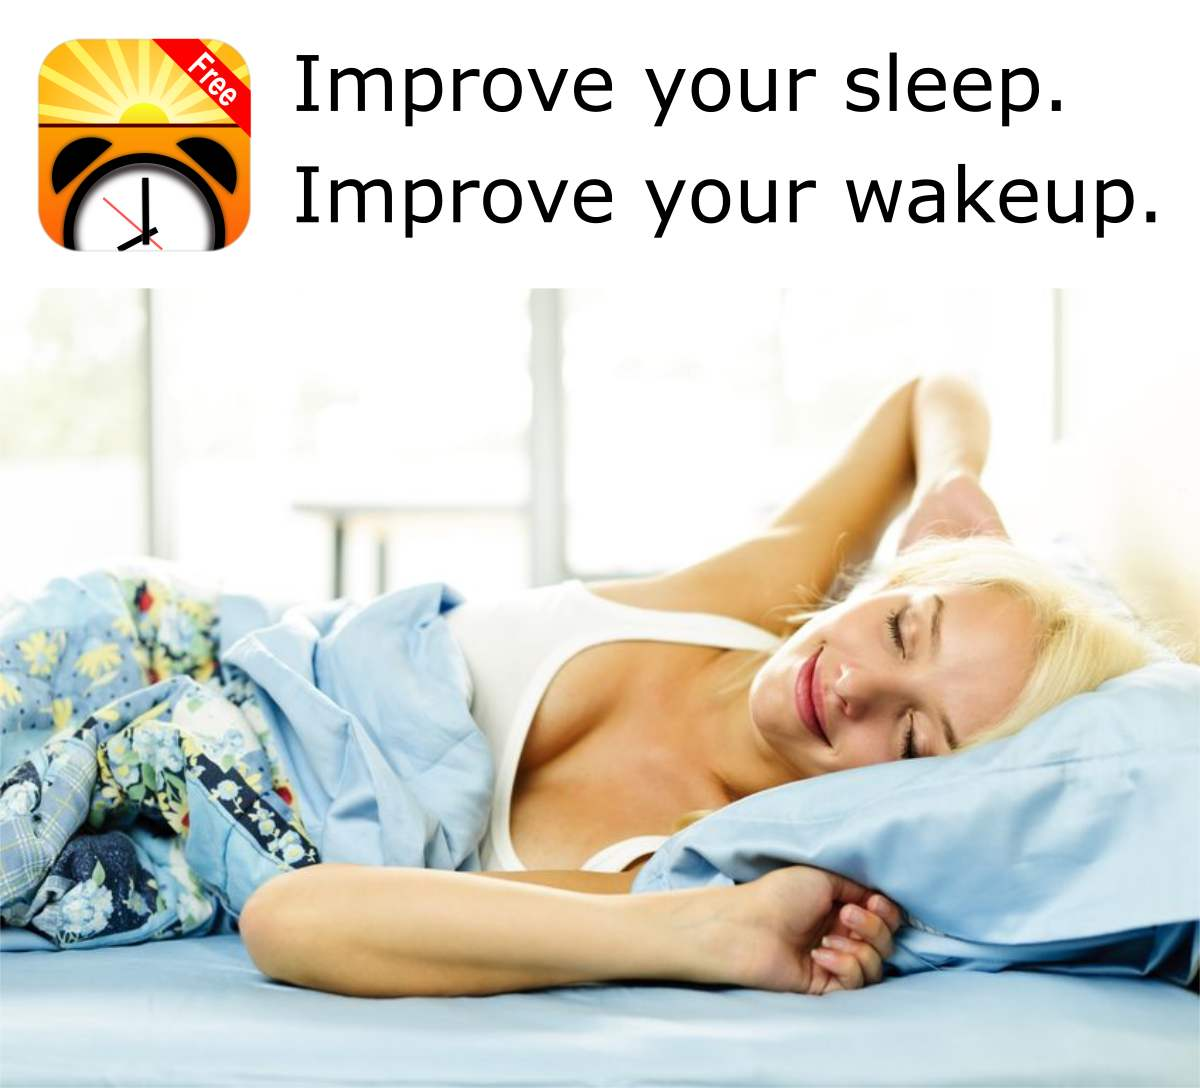 Gentle Wakeup – Sleep & Alarm Clock App – Improve your sleep